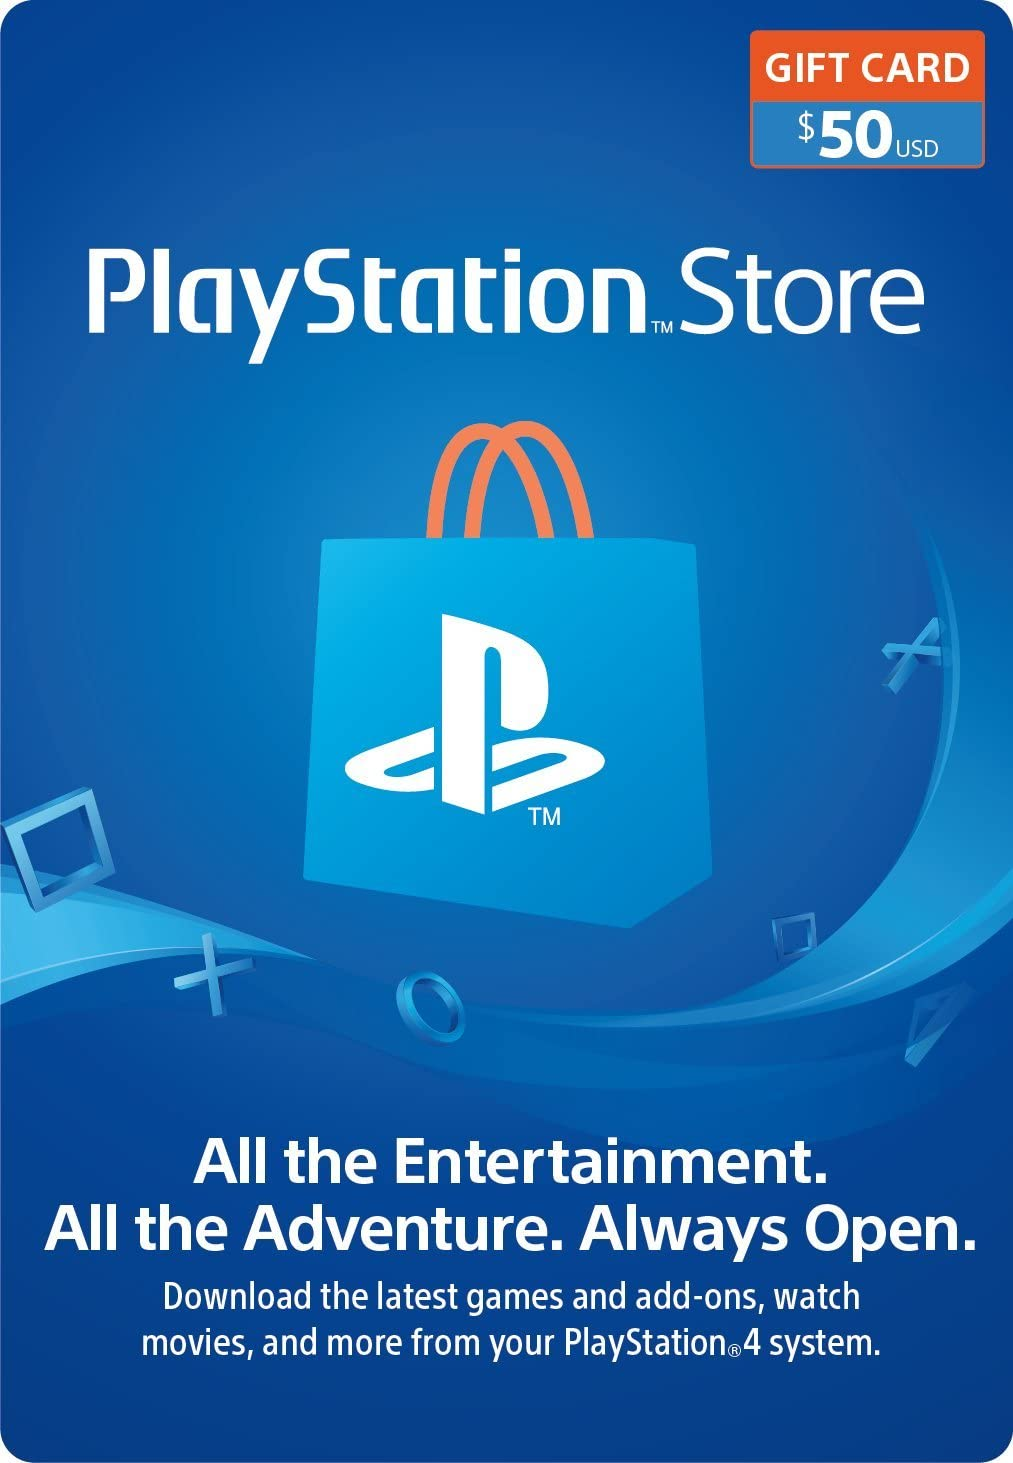 Amazon.com: $50 PlayStation Store Gift Card [Digital Code]: Video Games